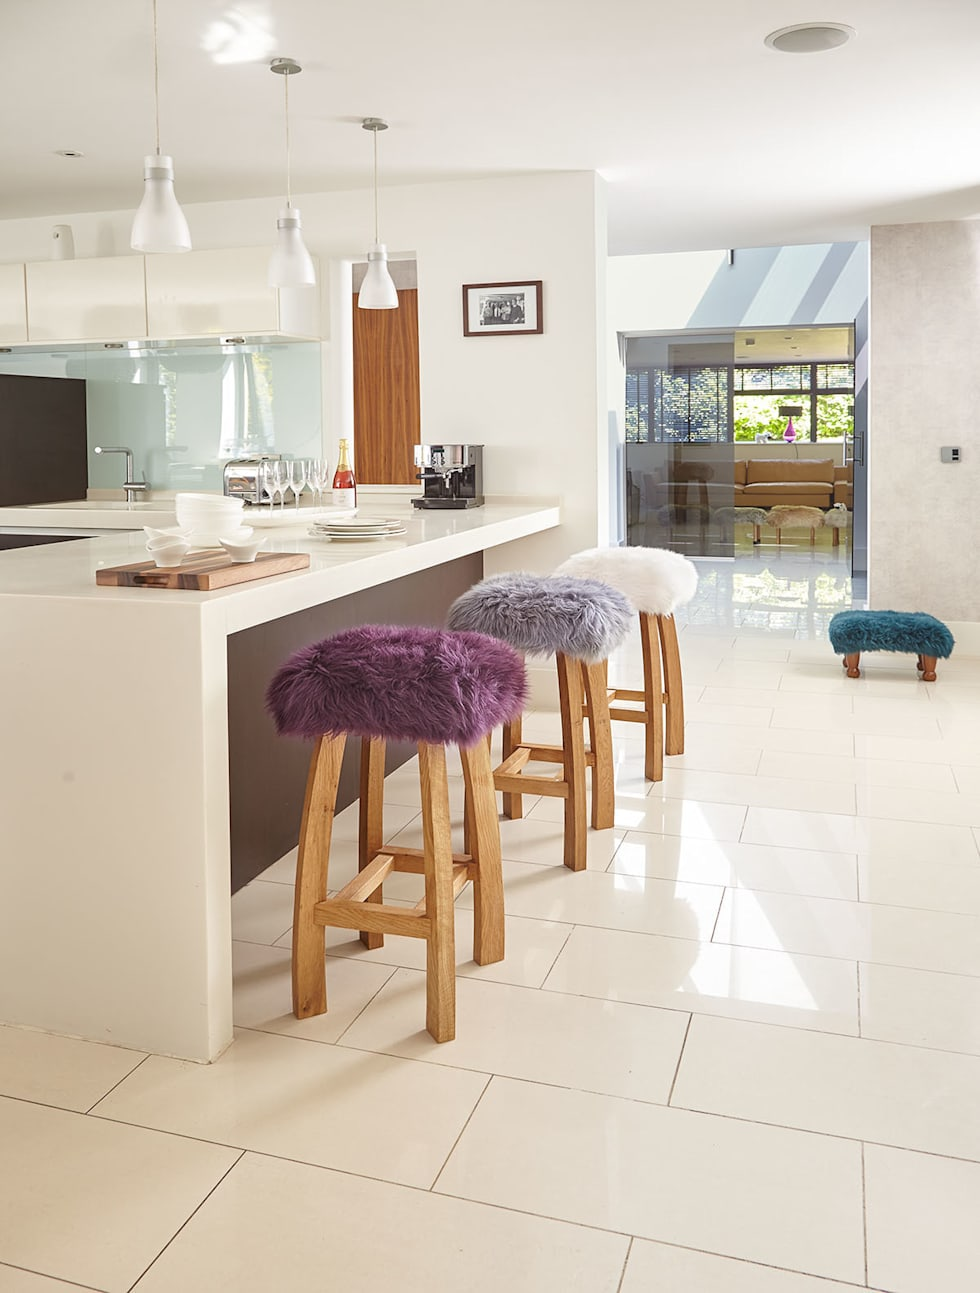 Kitchen by Baa Stool